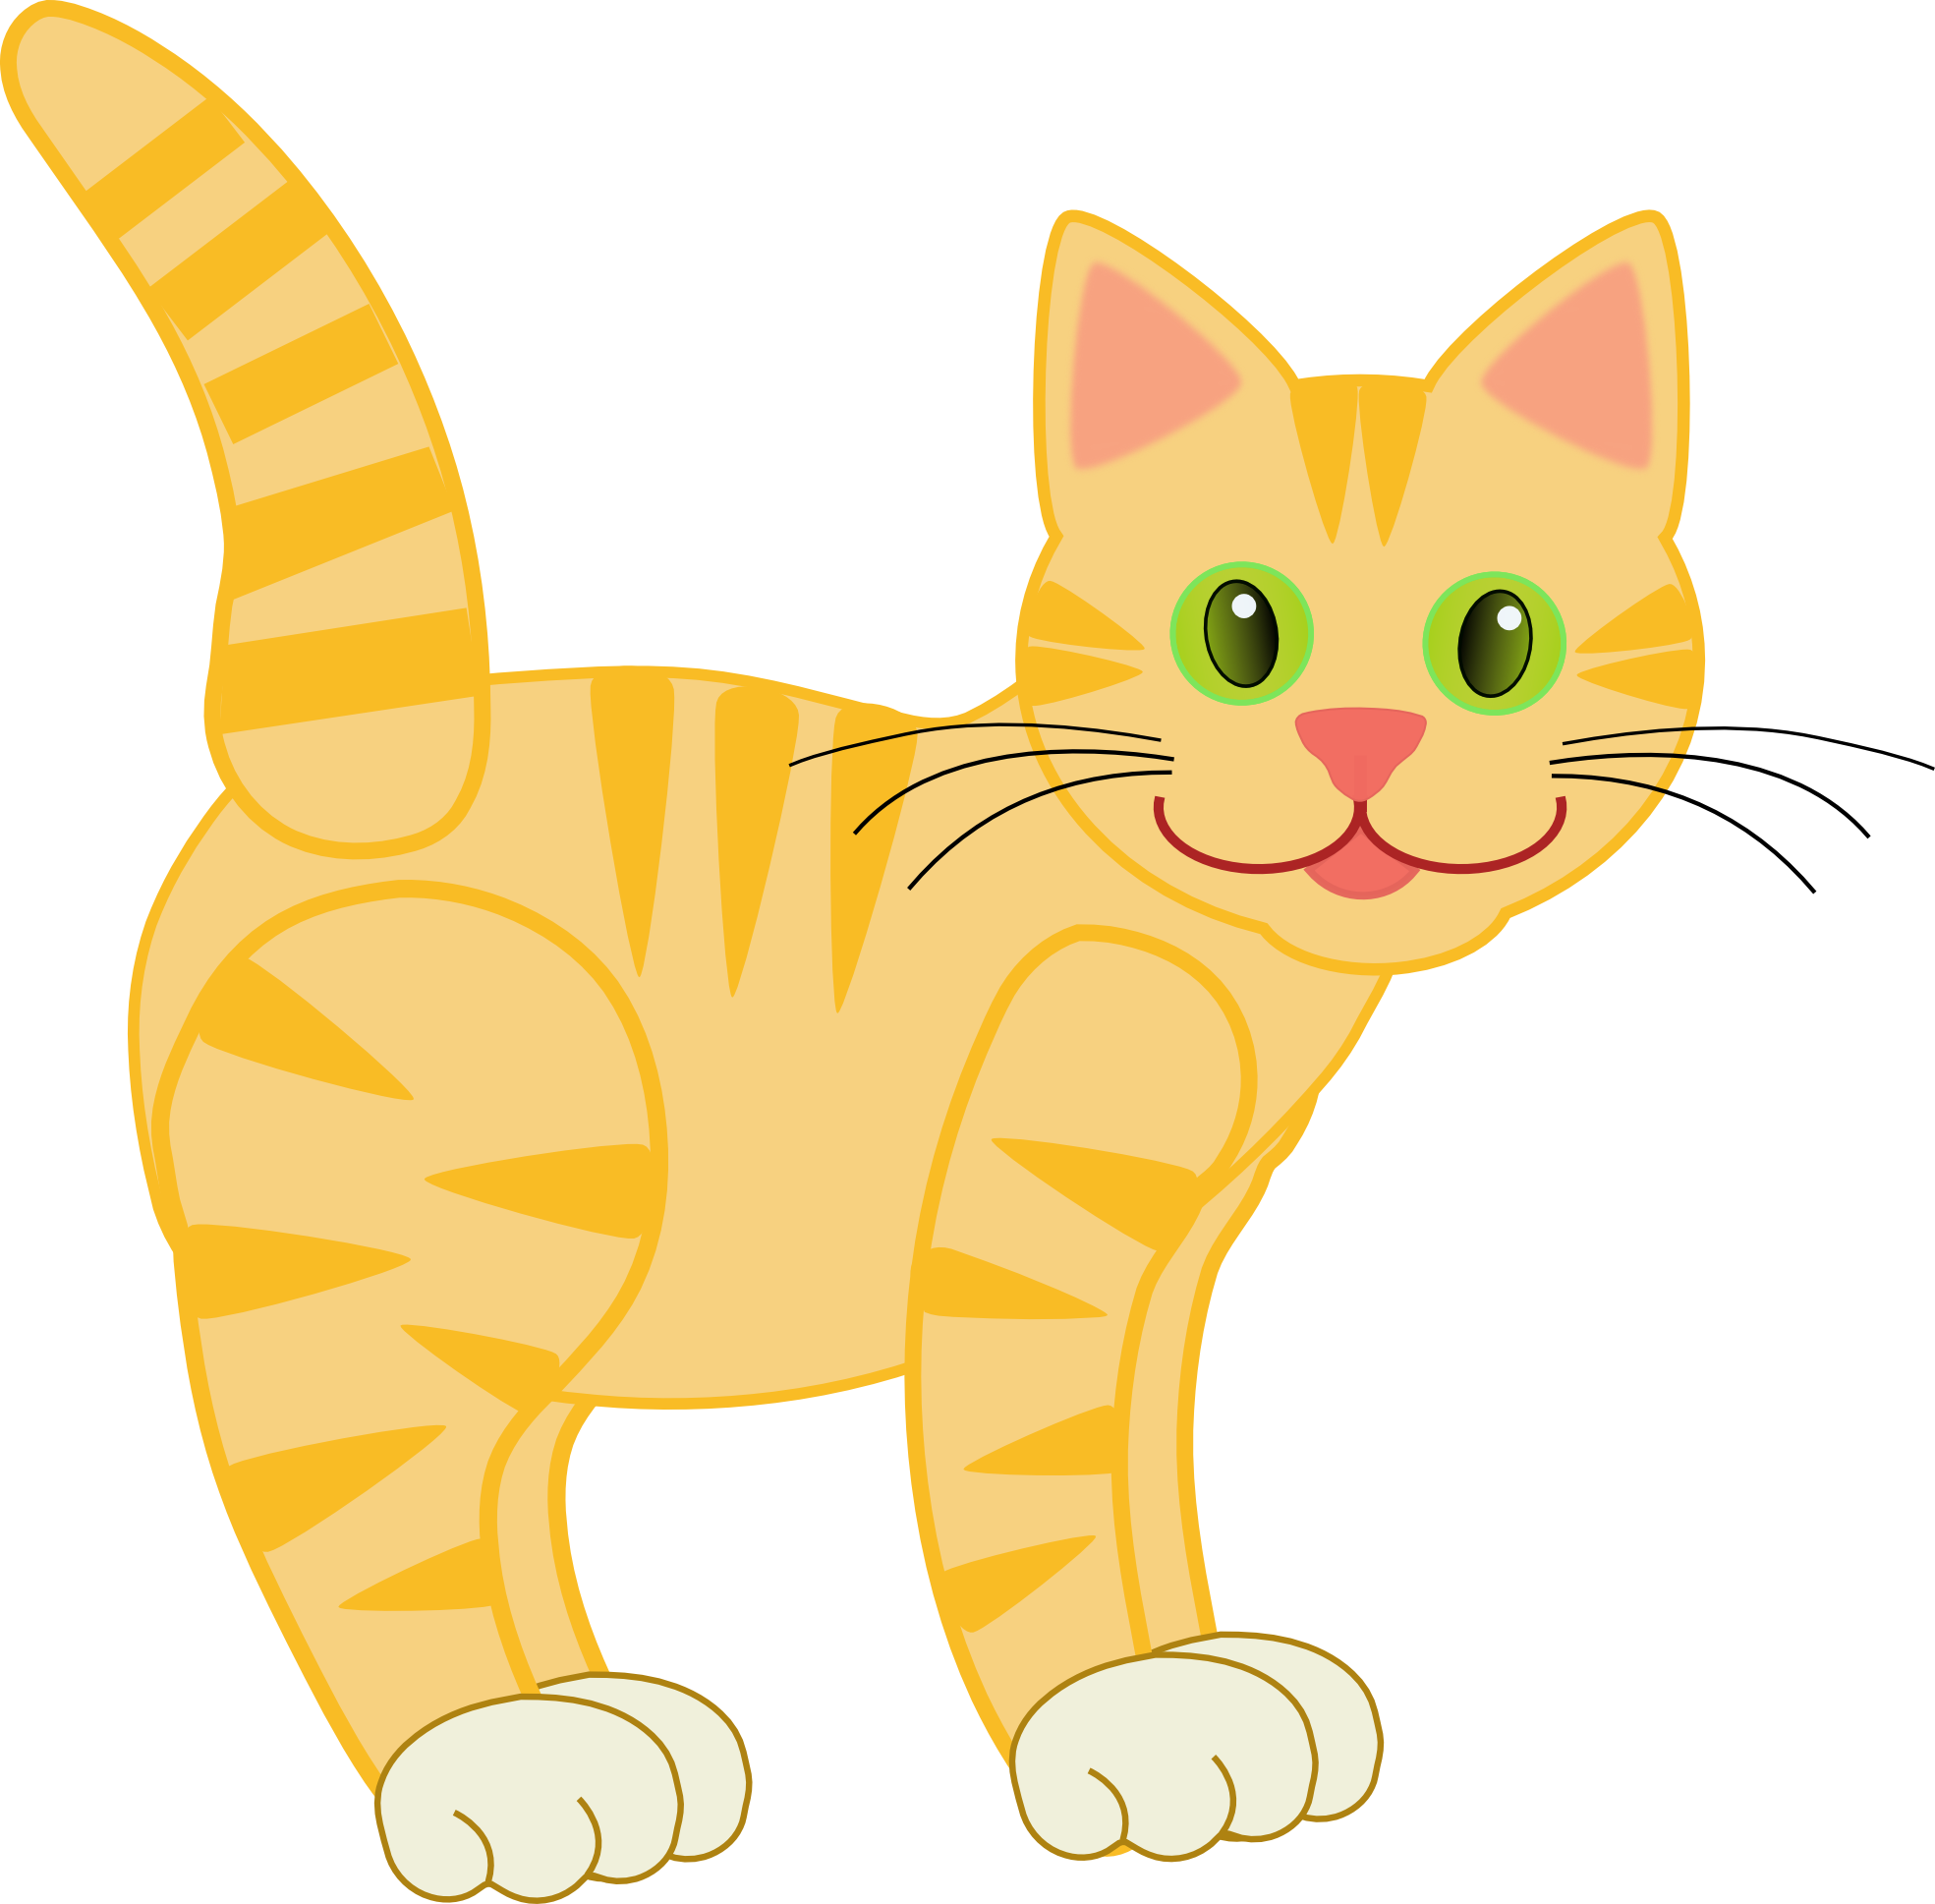 Dj cat clipart picture black and white stock Clip art version2 yellow tiger cat | 15.10.8 | Pinterest | Clip art ... picture black and white stock